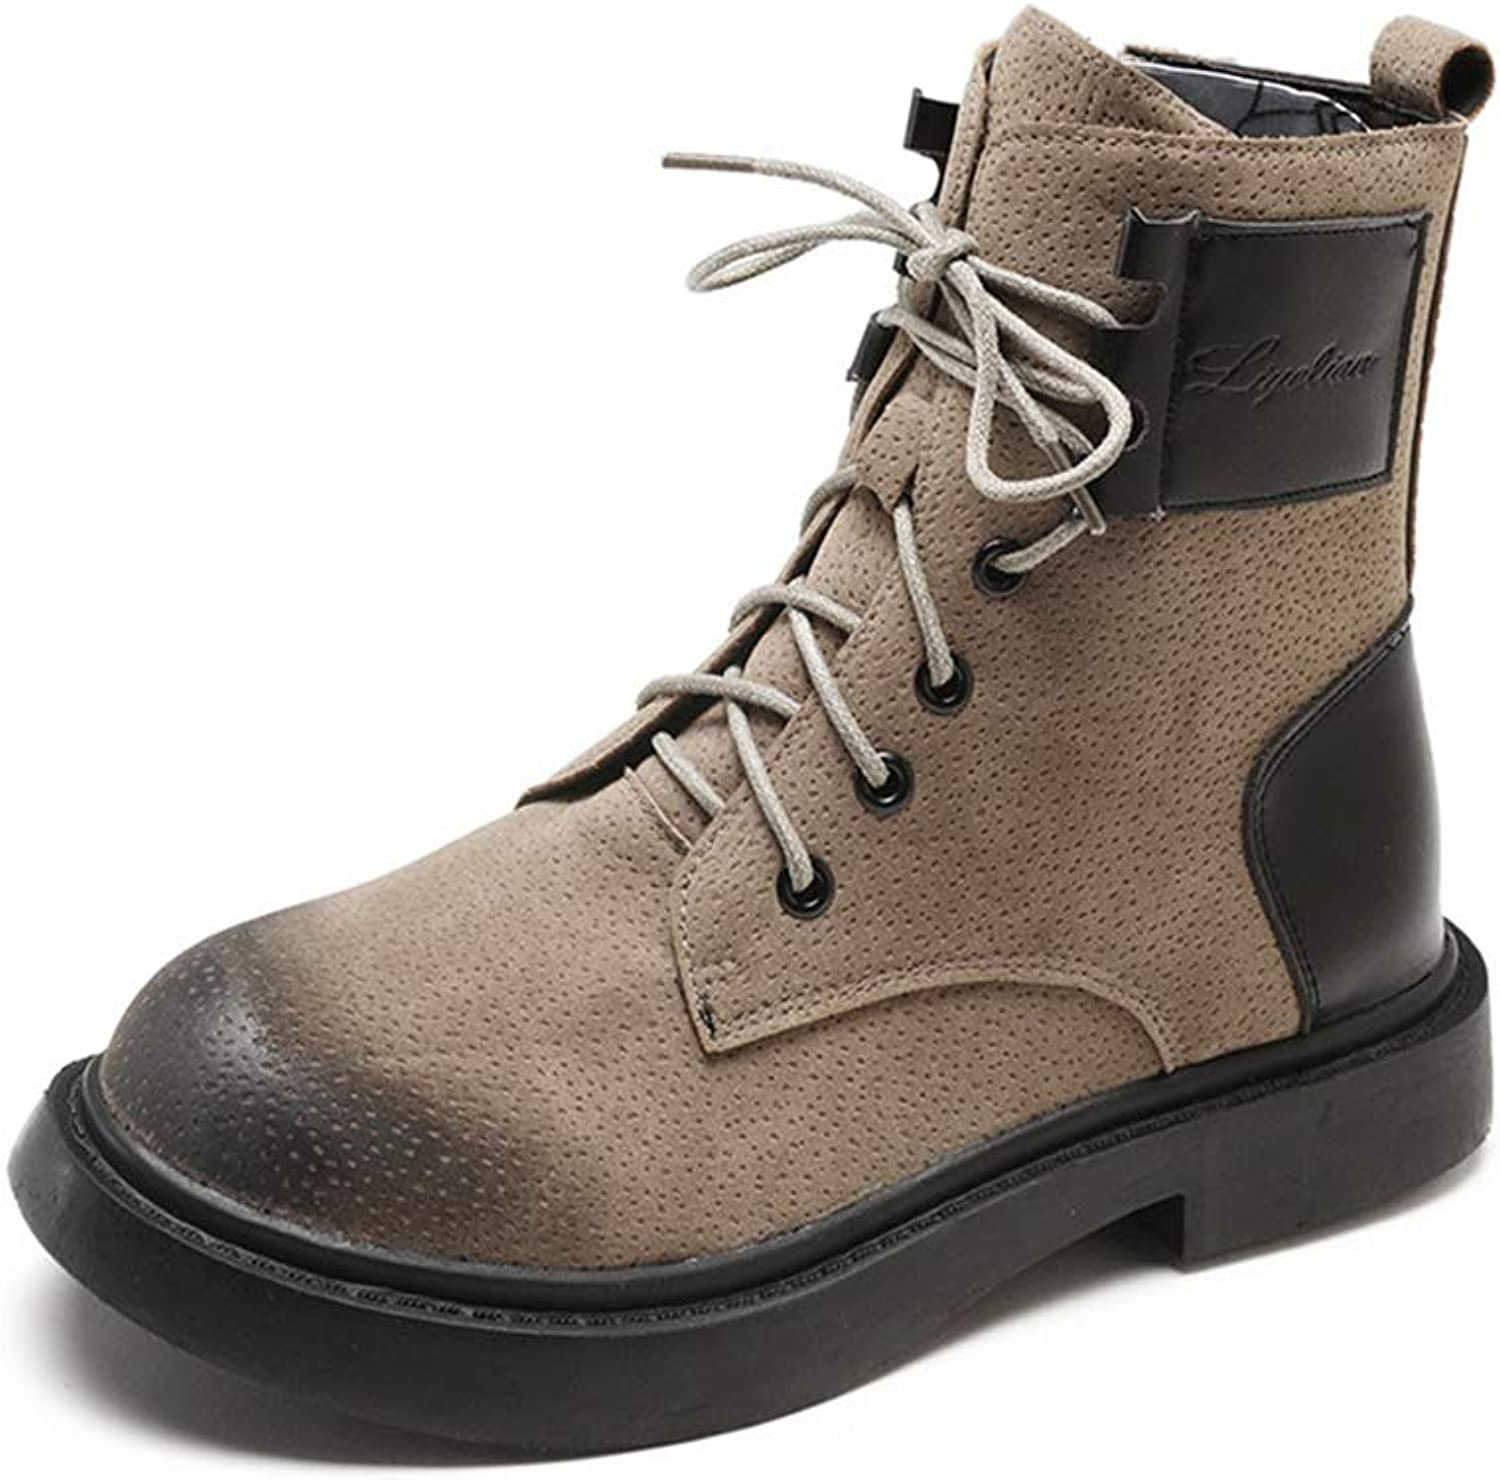 Women's Round Toe Lase-up Ankle Boots Ladies Leather Combat Booties Fashion Martin Boots